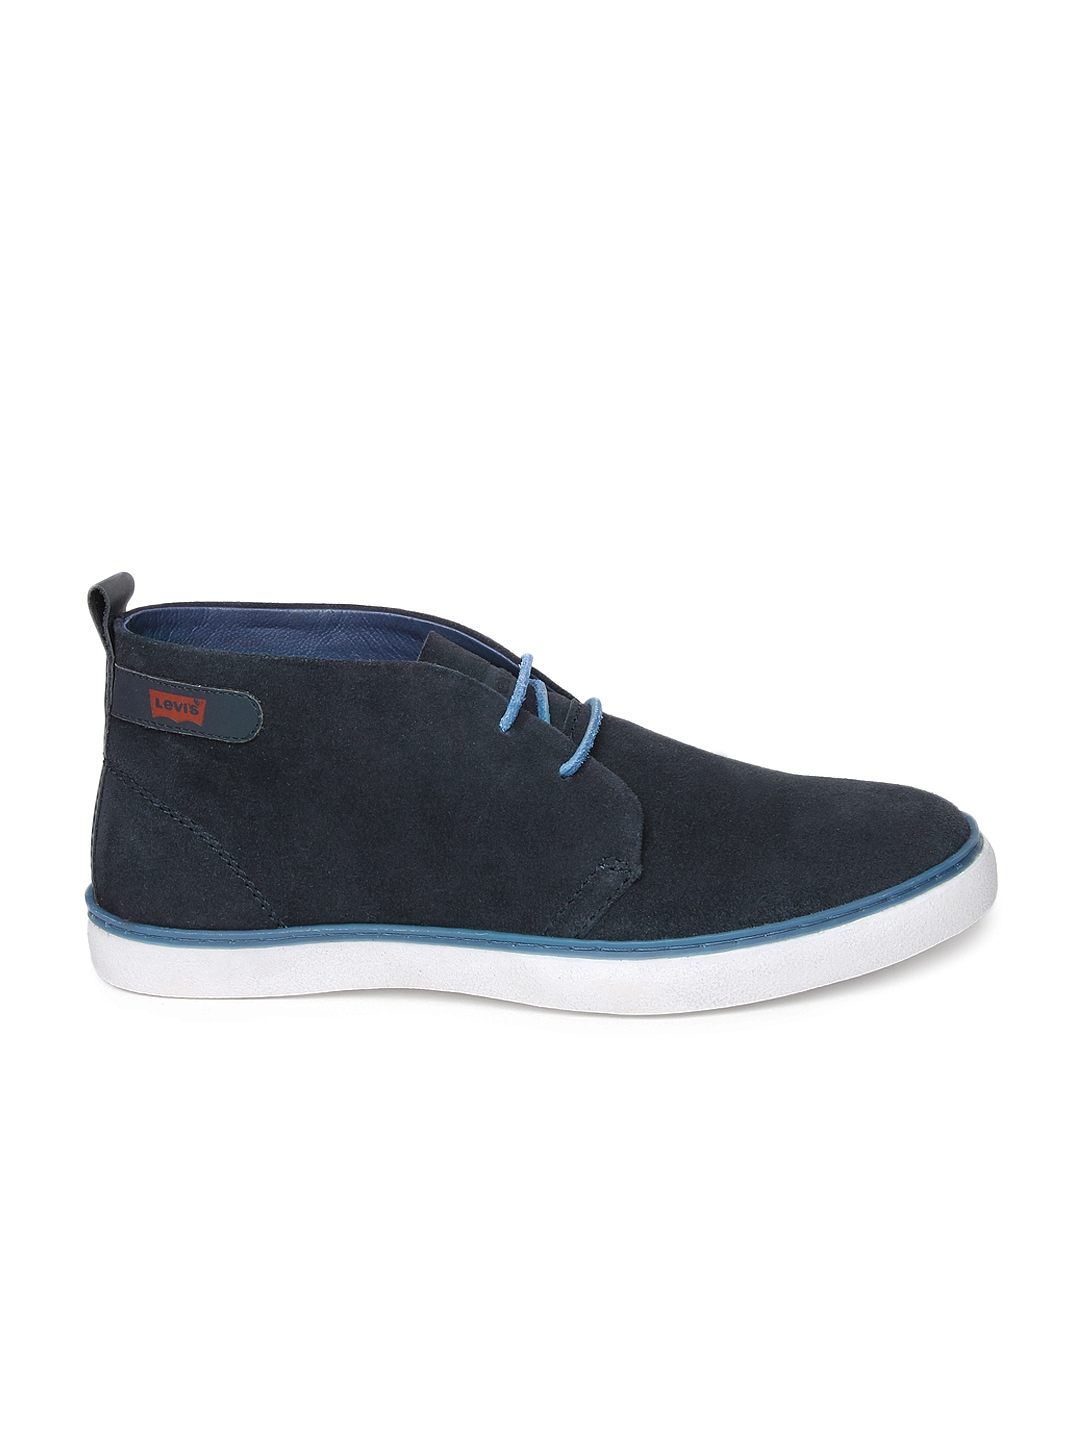 myntra levis navy suede casual shoes 498062 buy